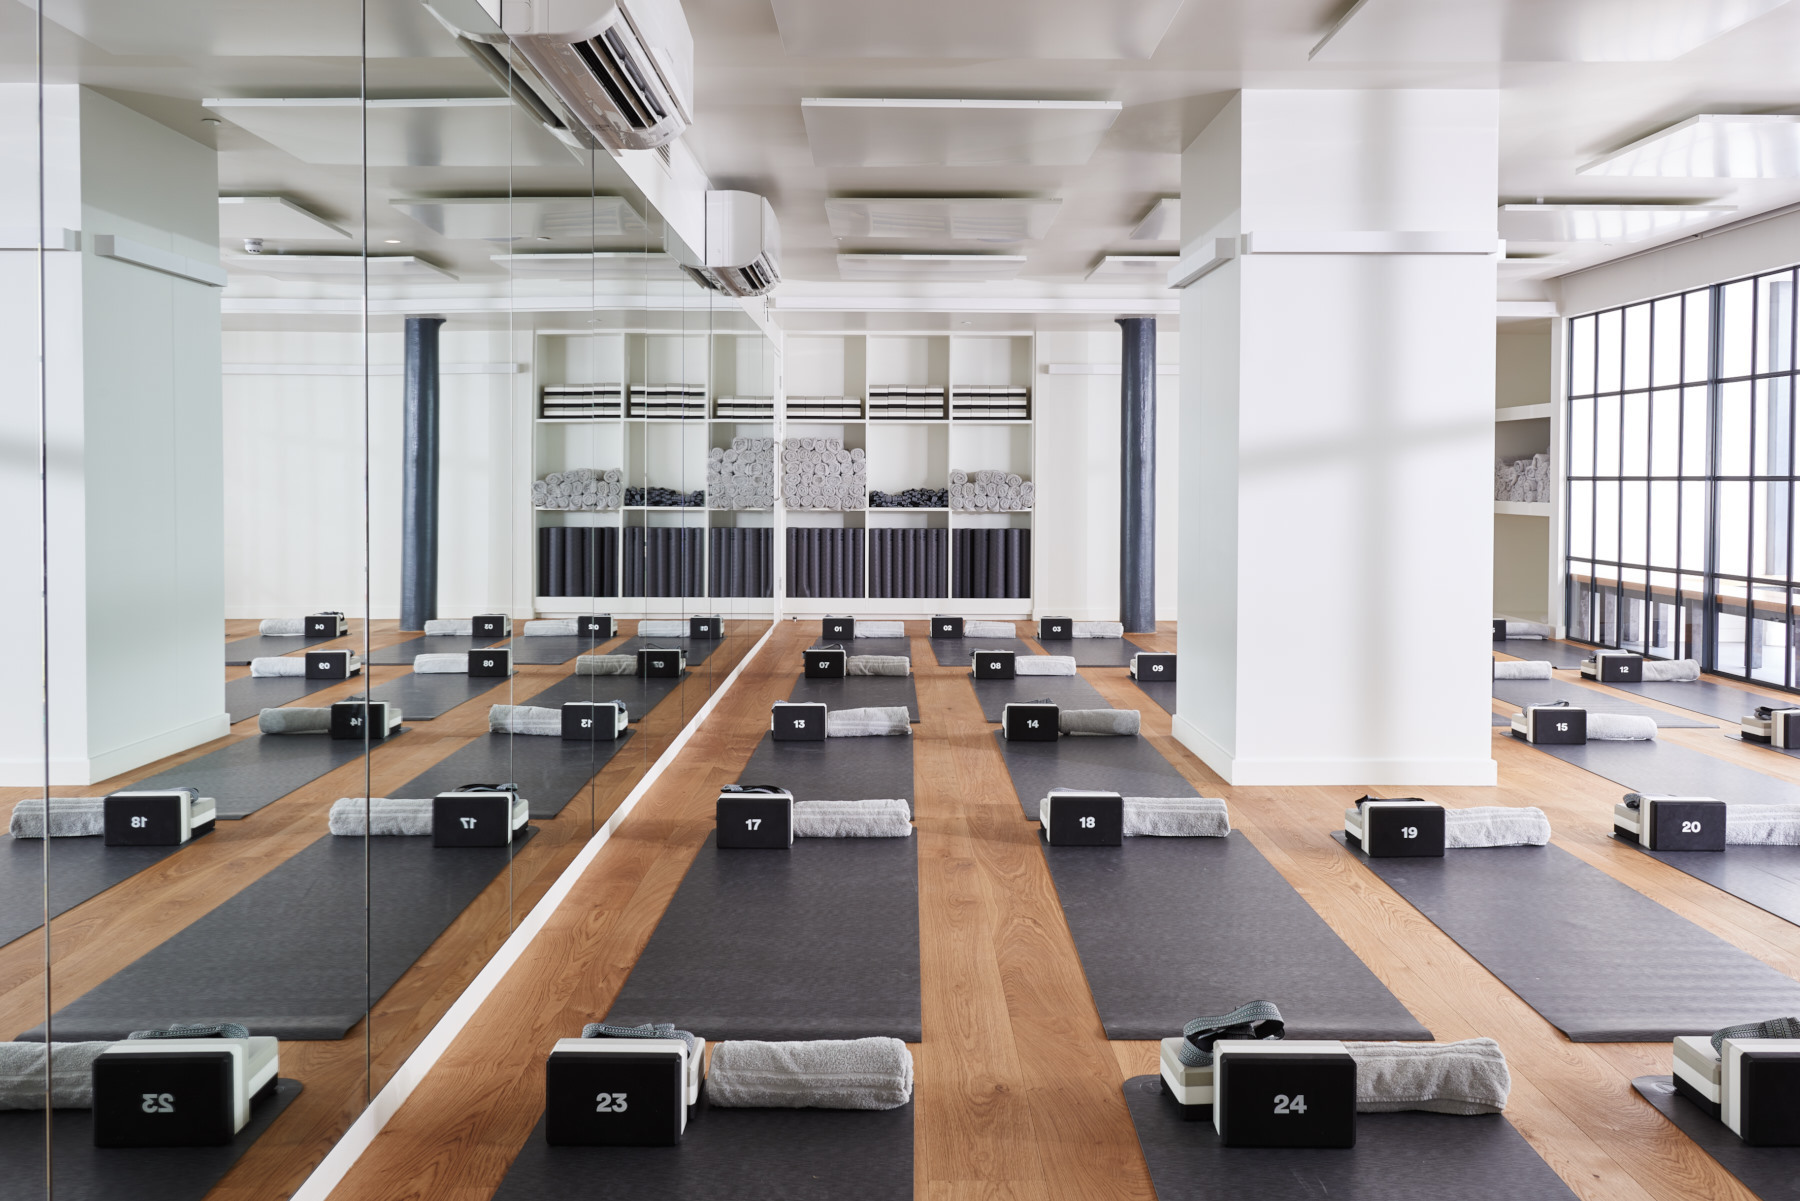 These yoga studios are streaming online classes right now